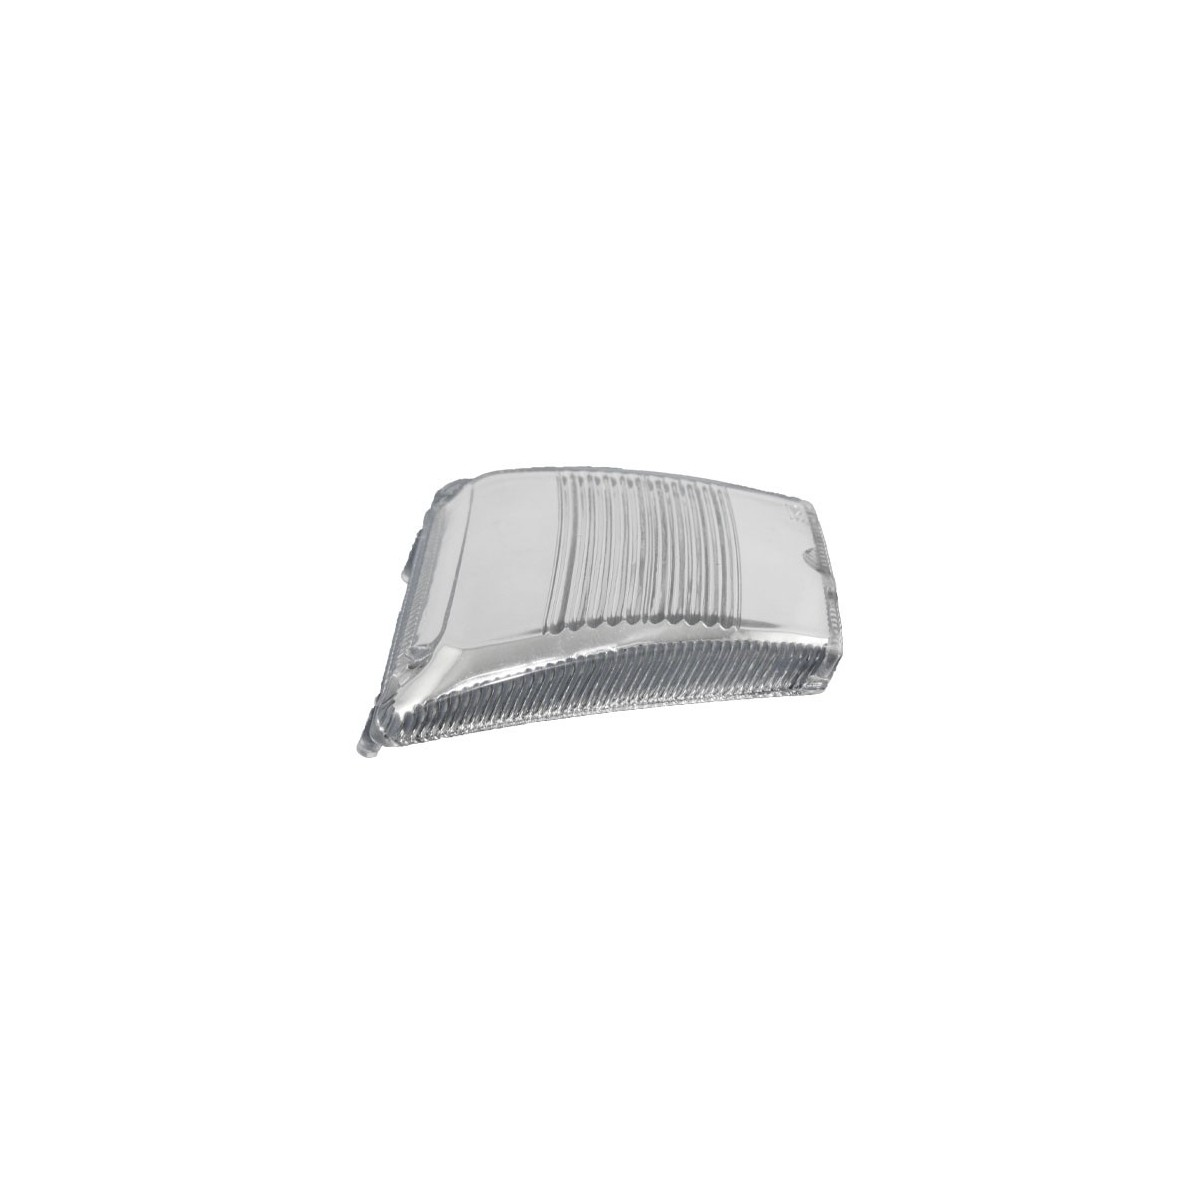 Middle Lamp EF 453 T